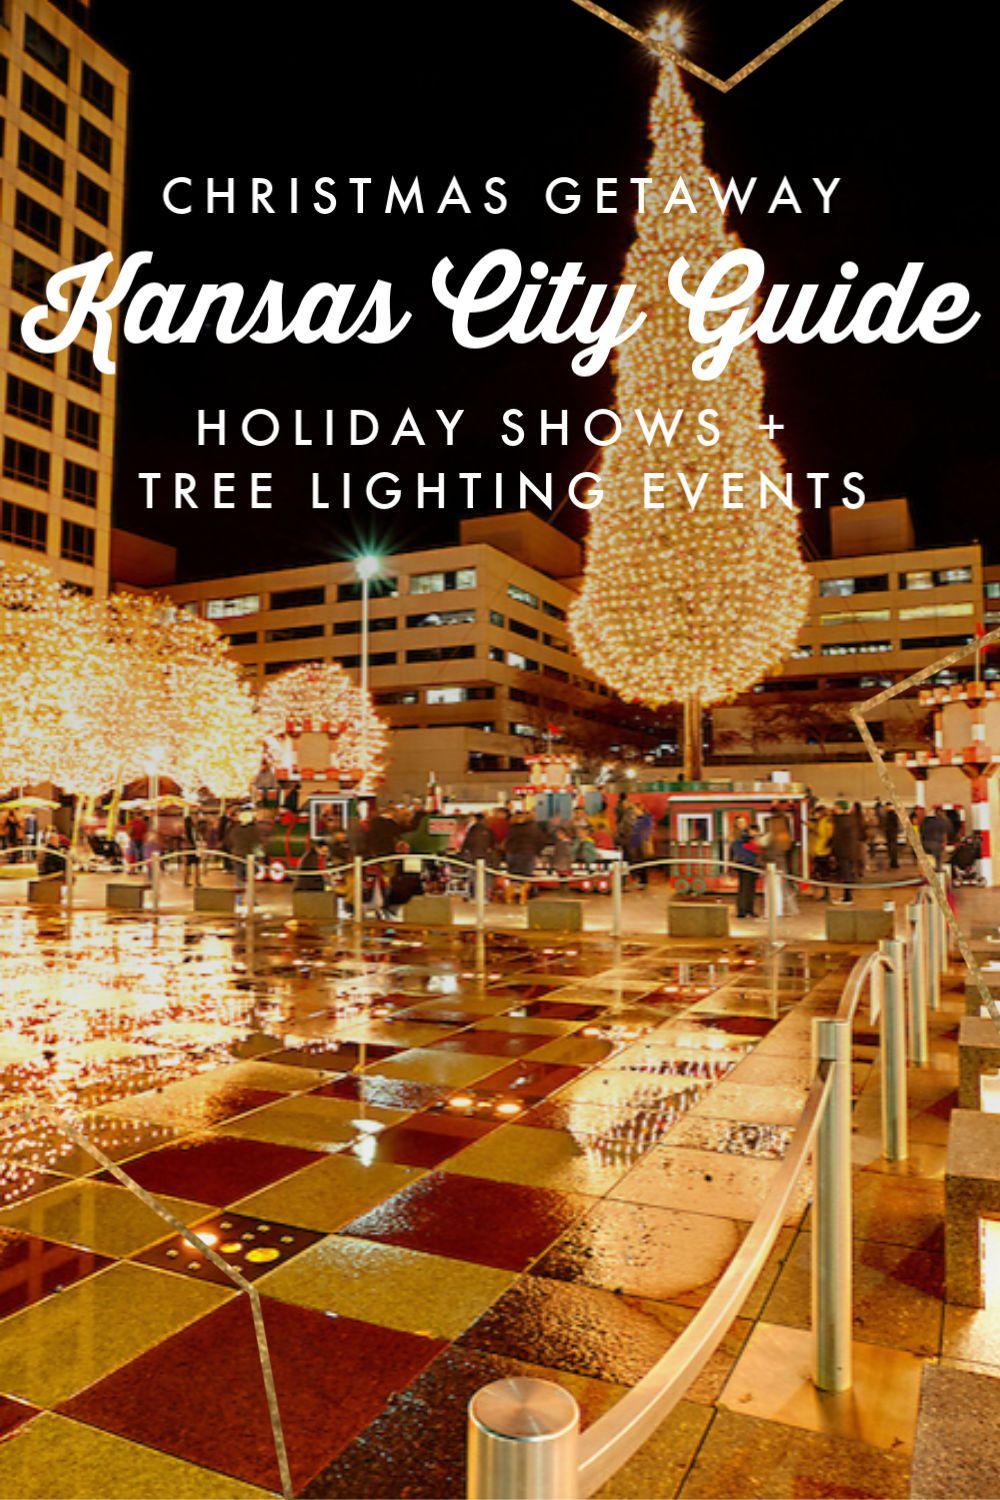 How to Spend the Christmas Holiday in Kansas City